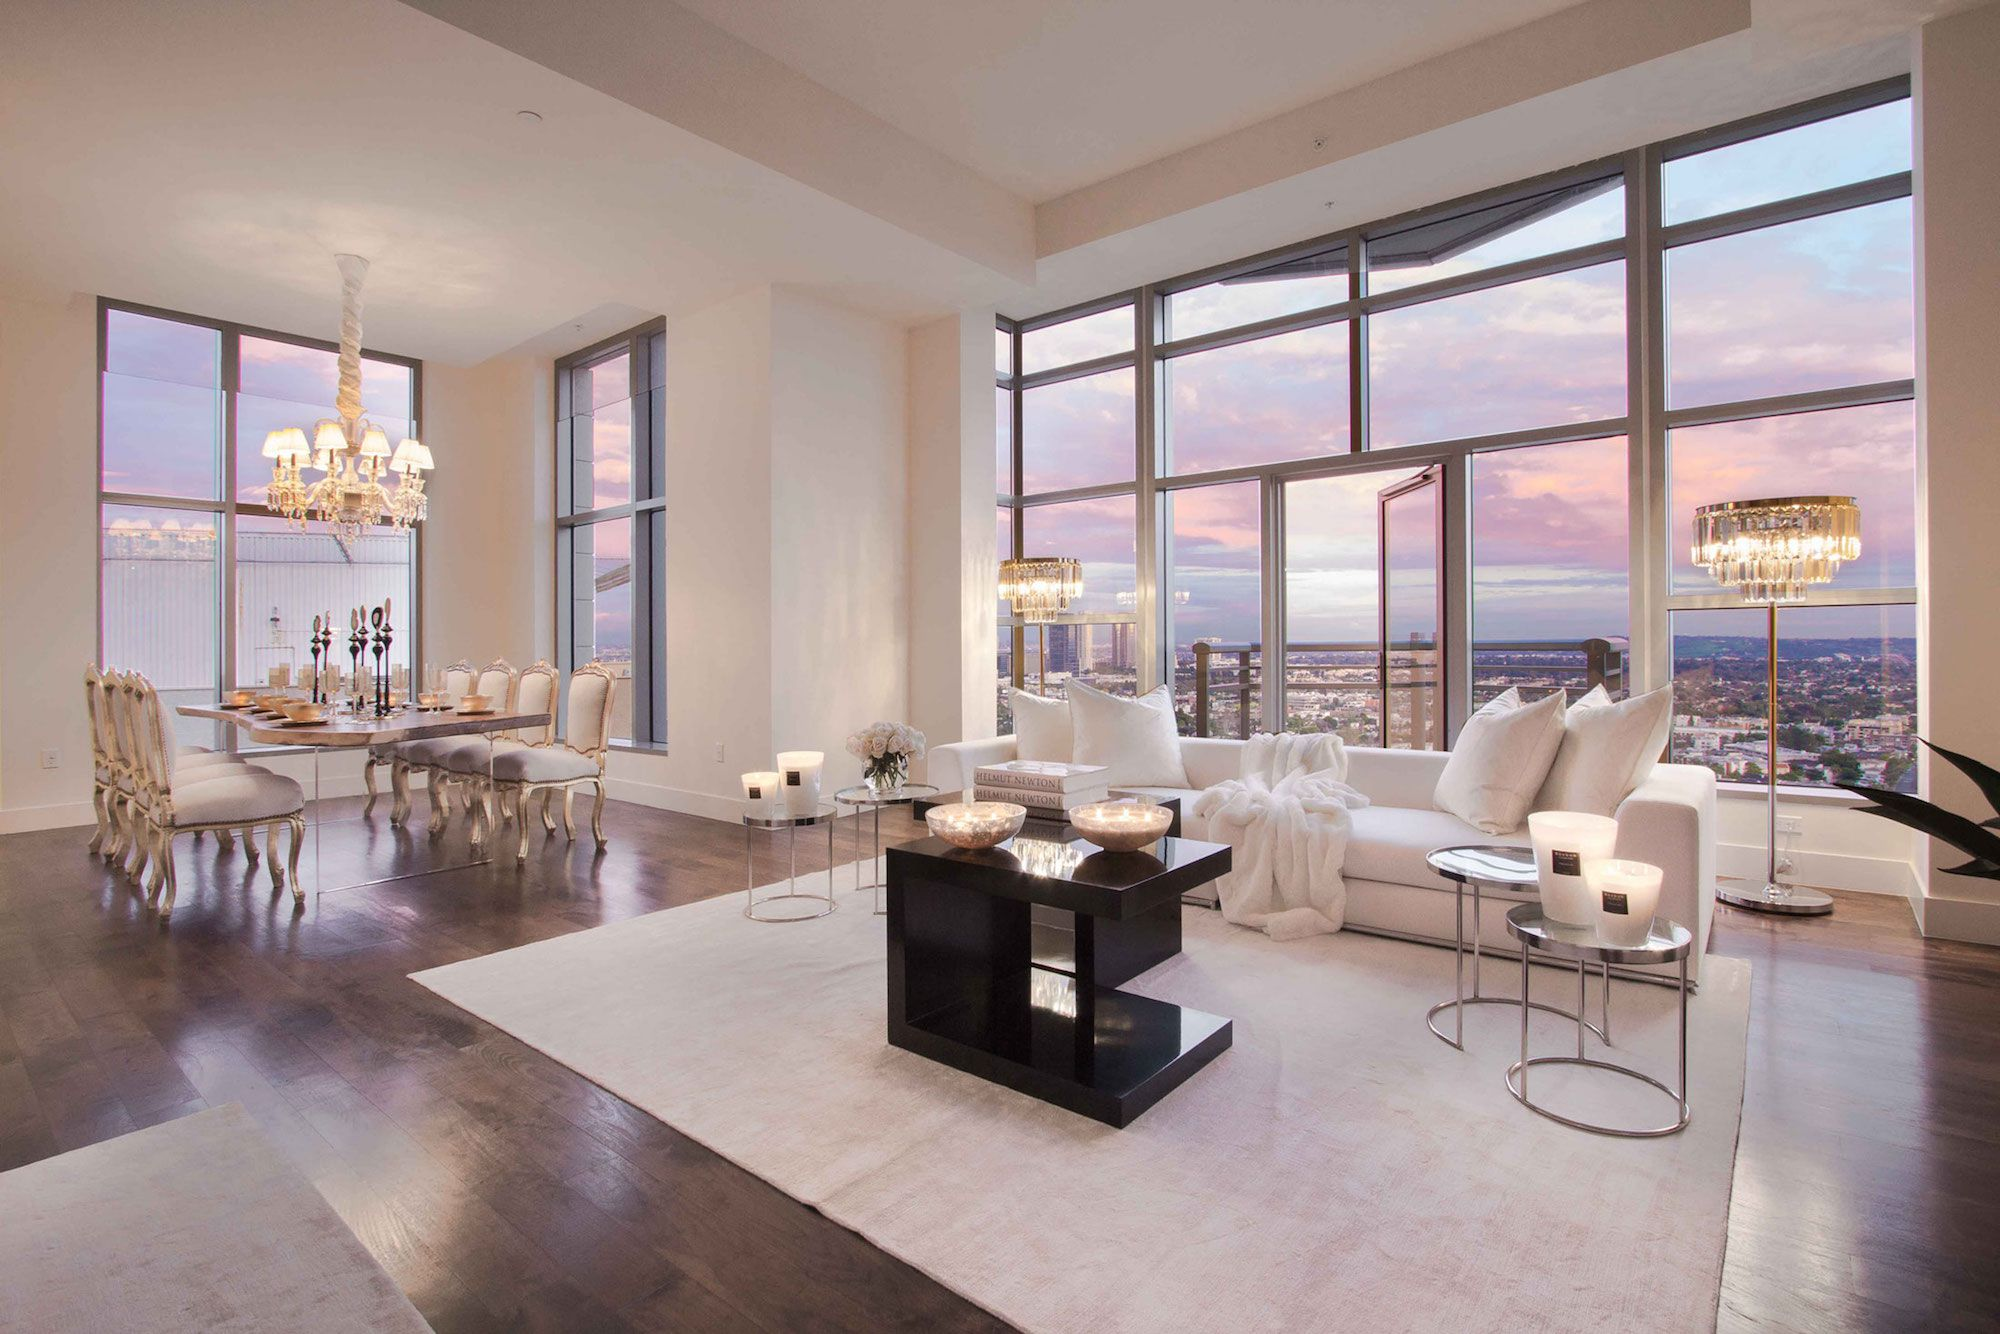 Luxury Penthouse In The Carlyle Residences By Premier Stagers Caandesign Architecture And